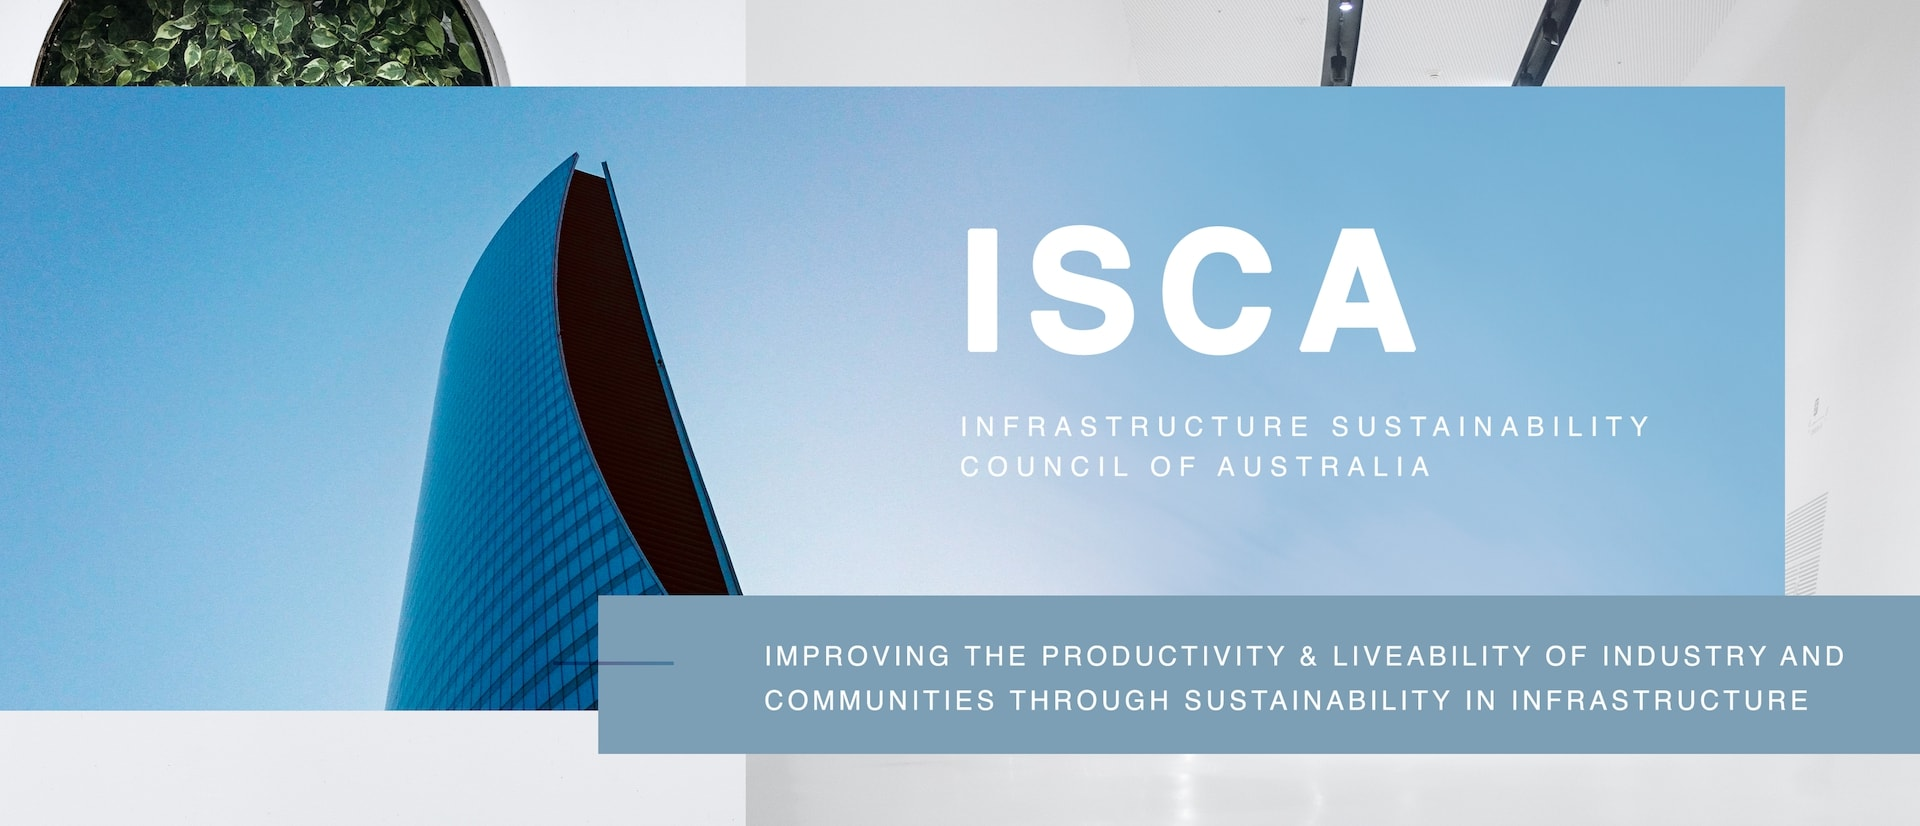 Infrastructure Sustainability Council Of Australia